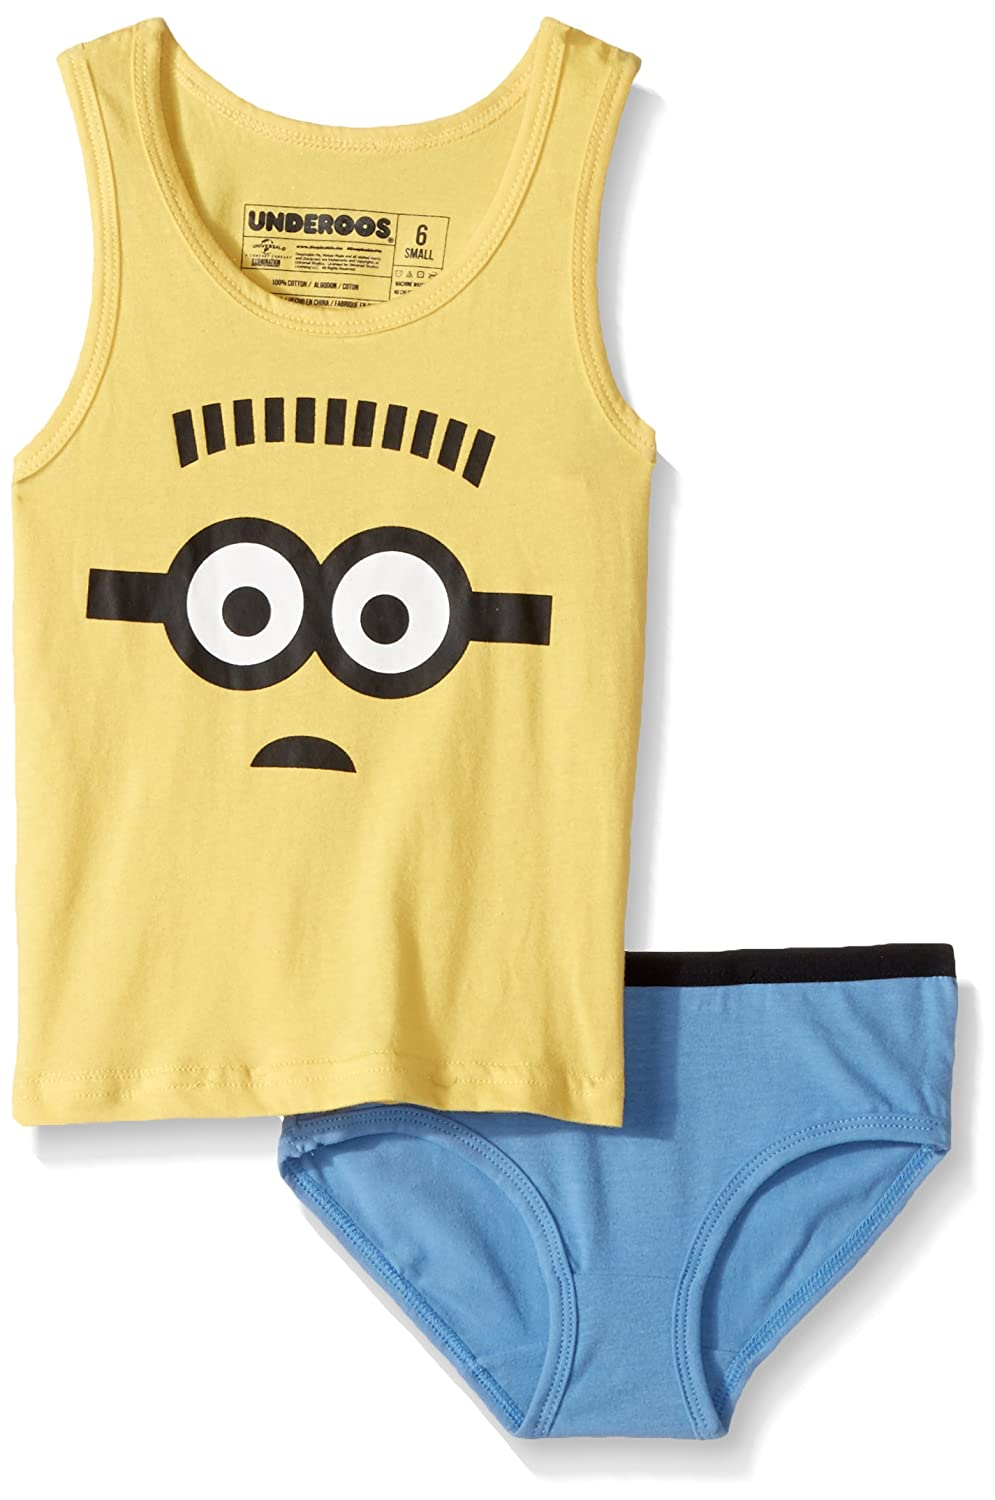 Bioworld Big Despicable Me Girls Underoos T-Shirt and Brief Set